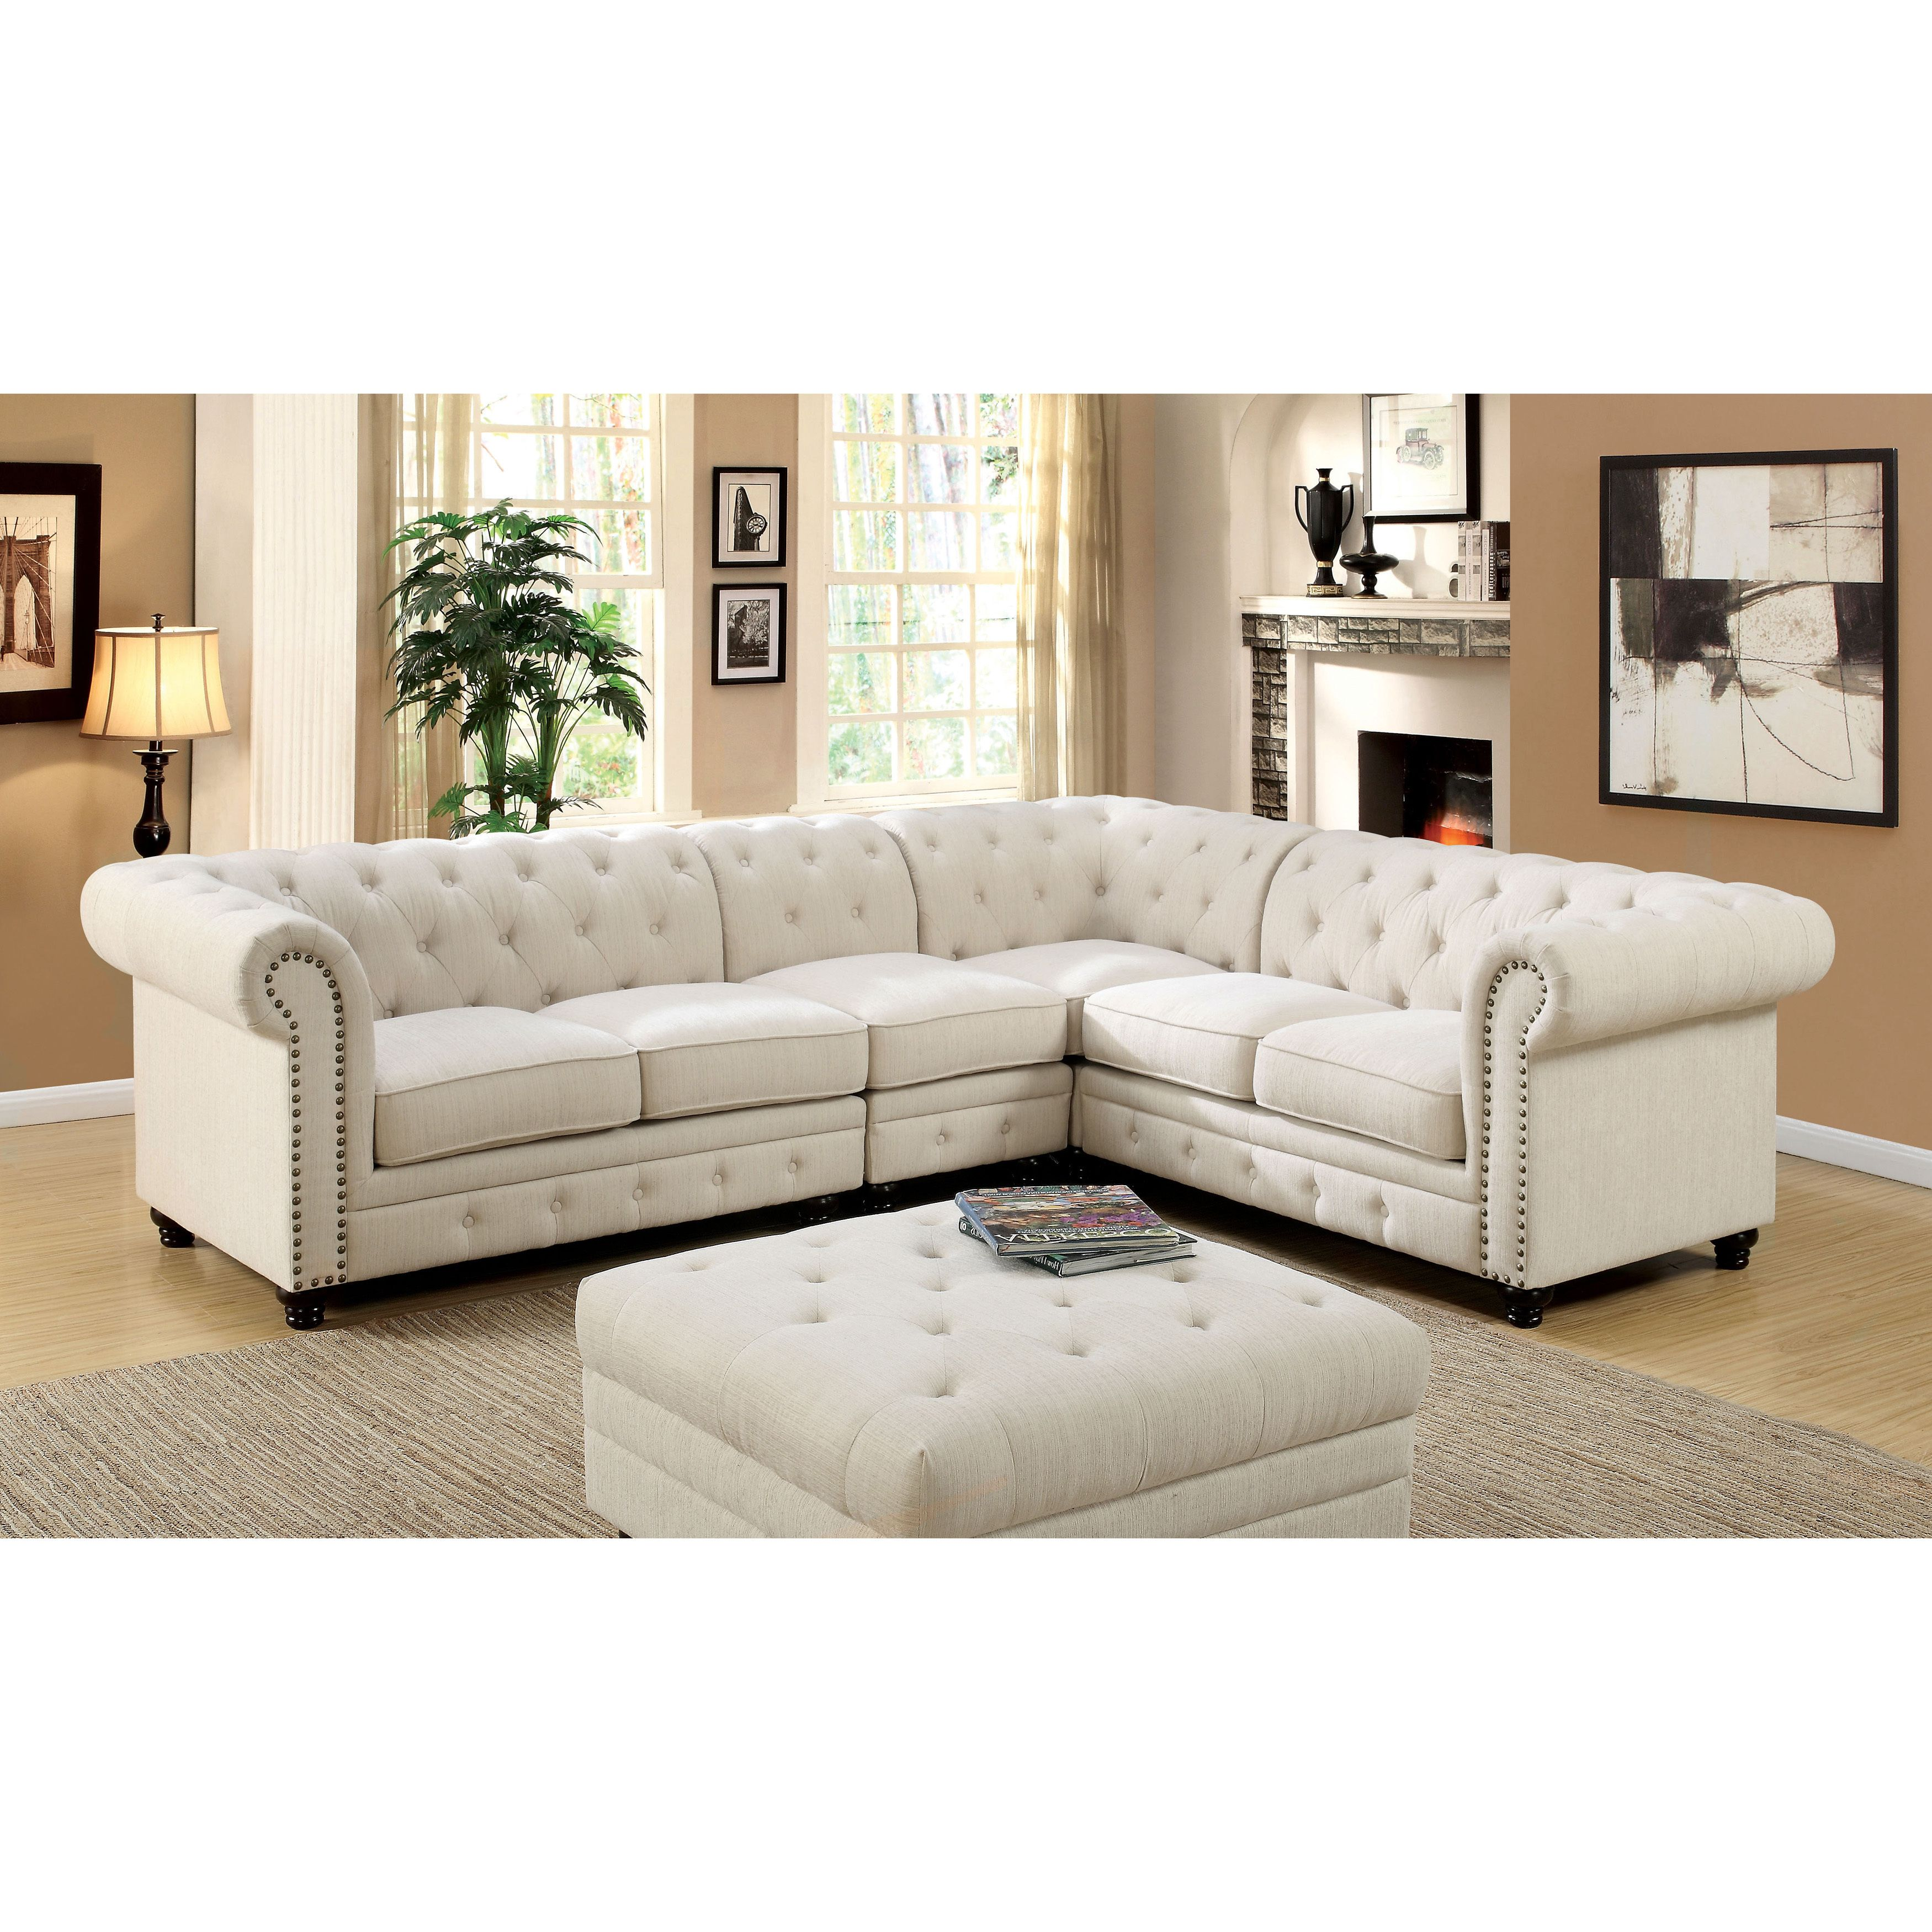 Furniture of America Sylvana Traditional Tufted Linen-like Sectional ...